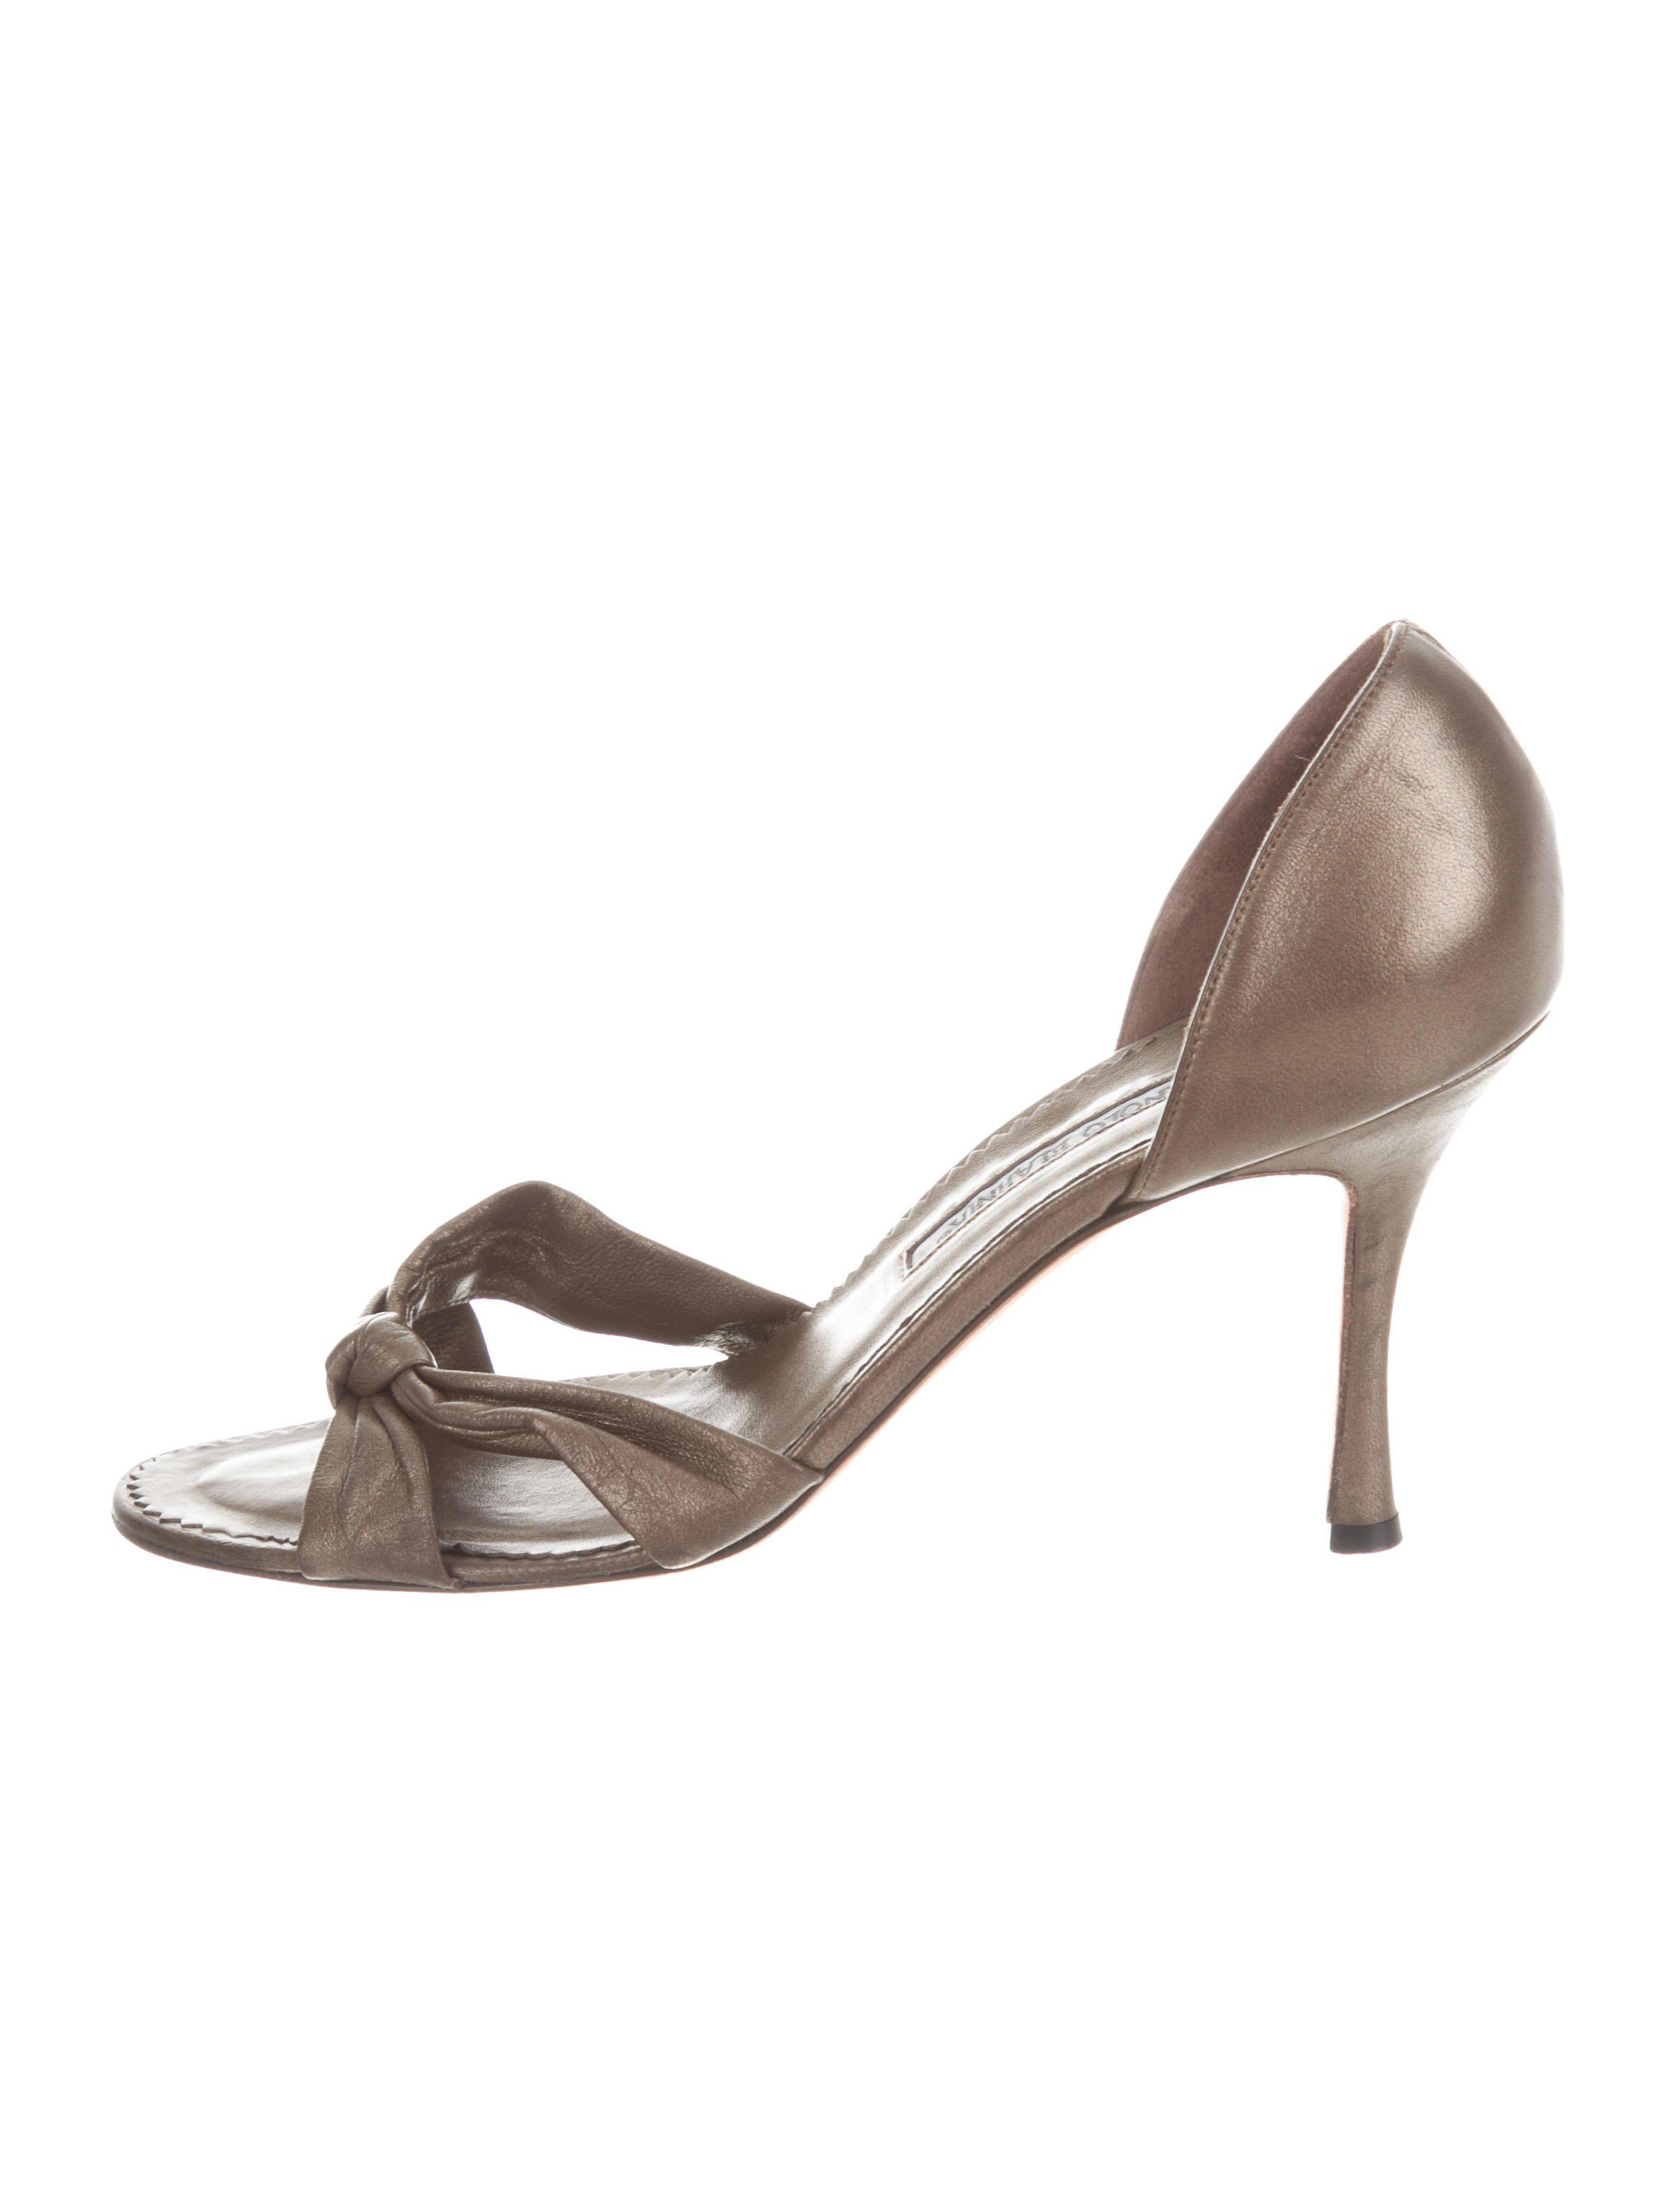 Manolo Blahnik Knot-Accented Slide Sandals with mastercard online Shop tumblr cheap online buy cheap with mastercard uDHD4Zlk